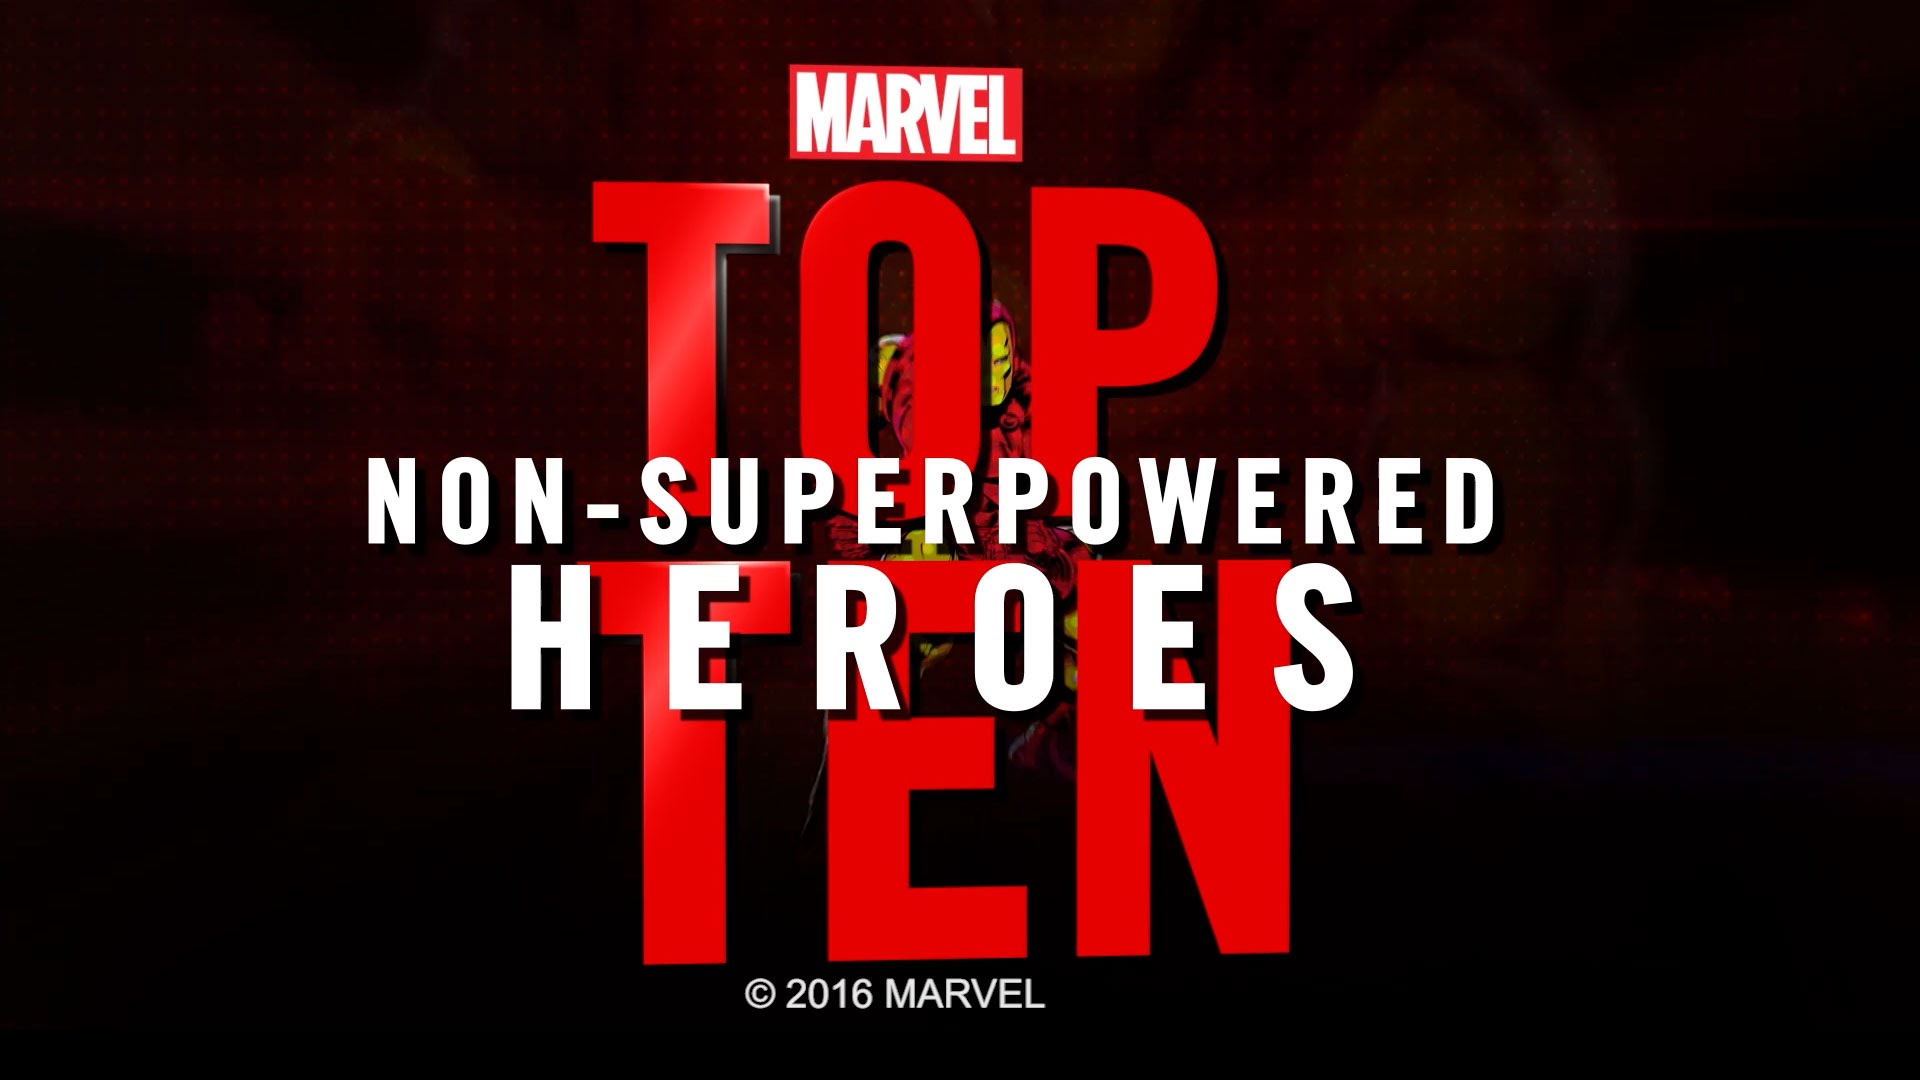 Marvel Top 10 Season 1 3